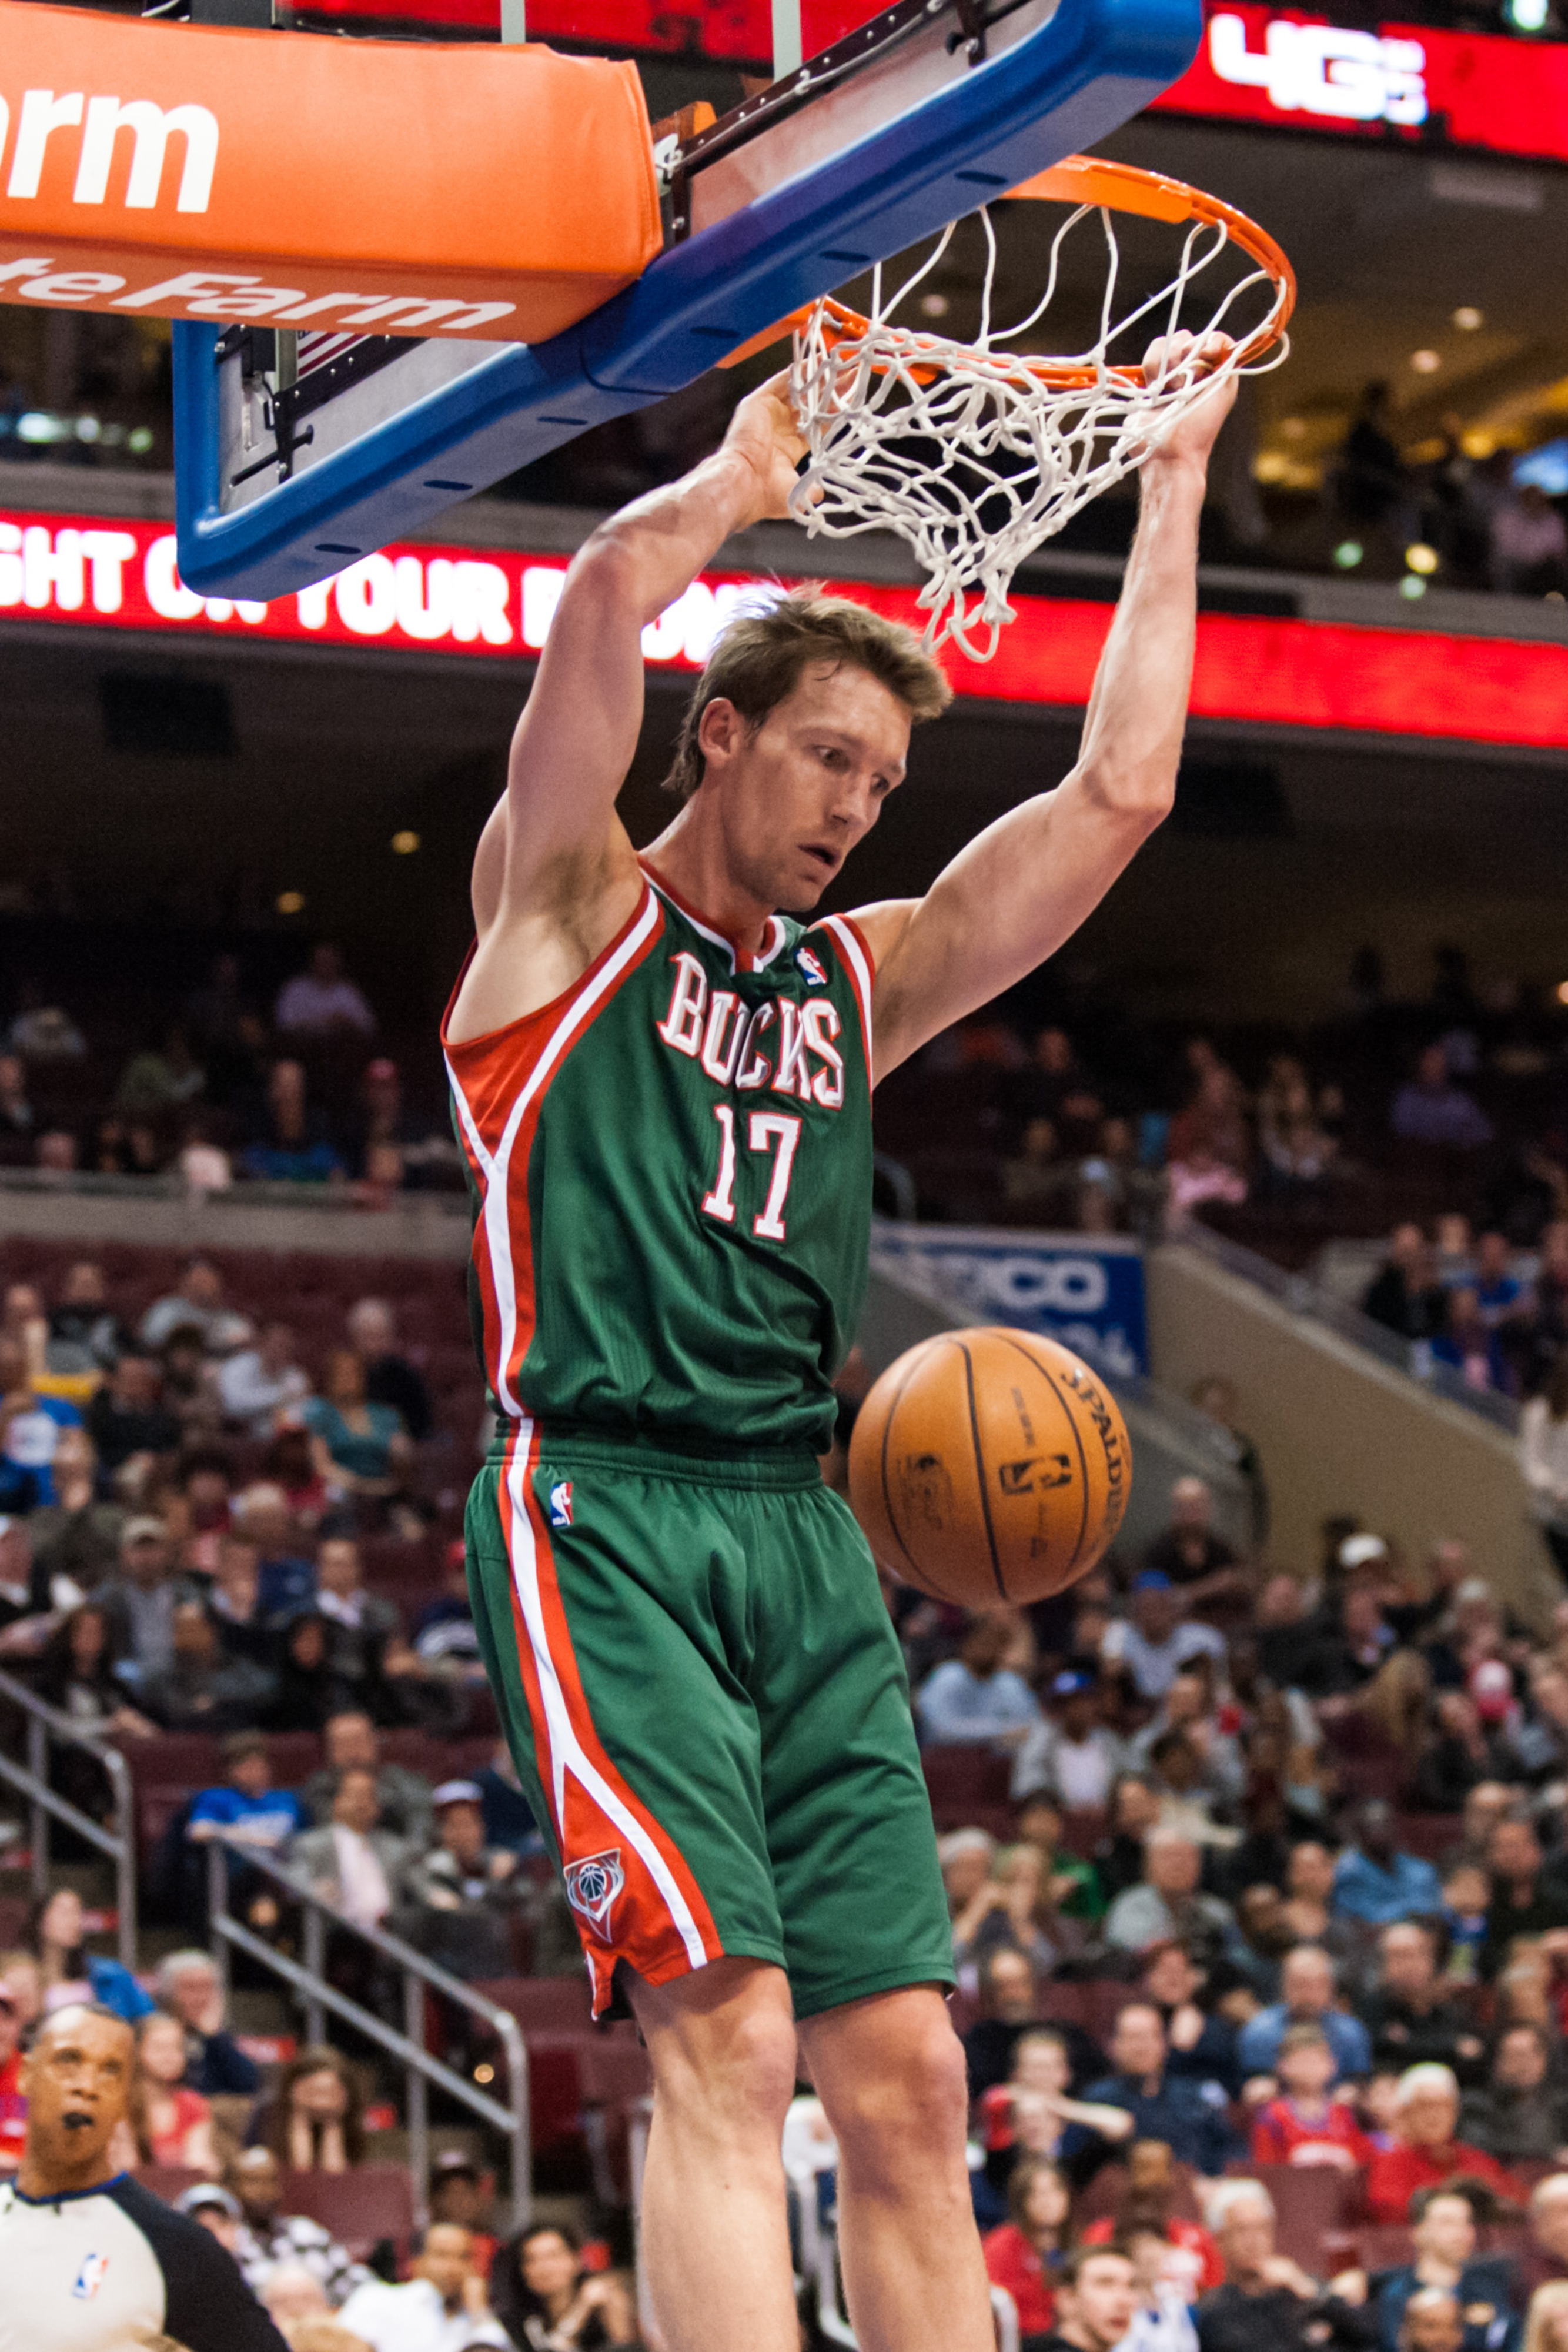 Mike Dunleavy two-hand dunk alert.